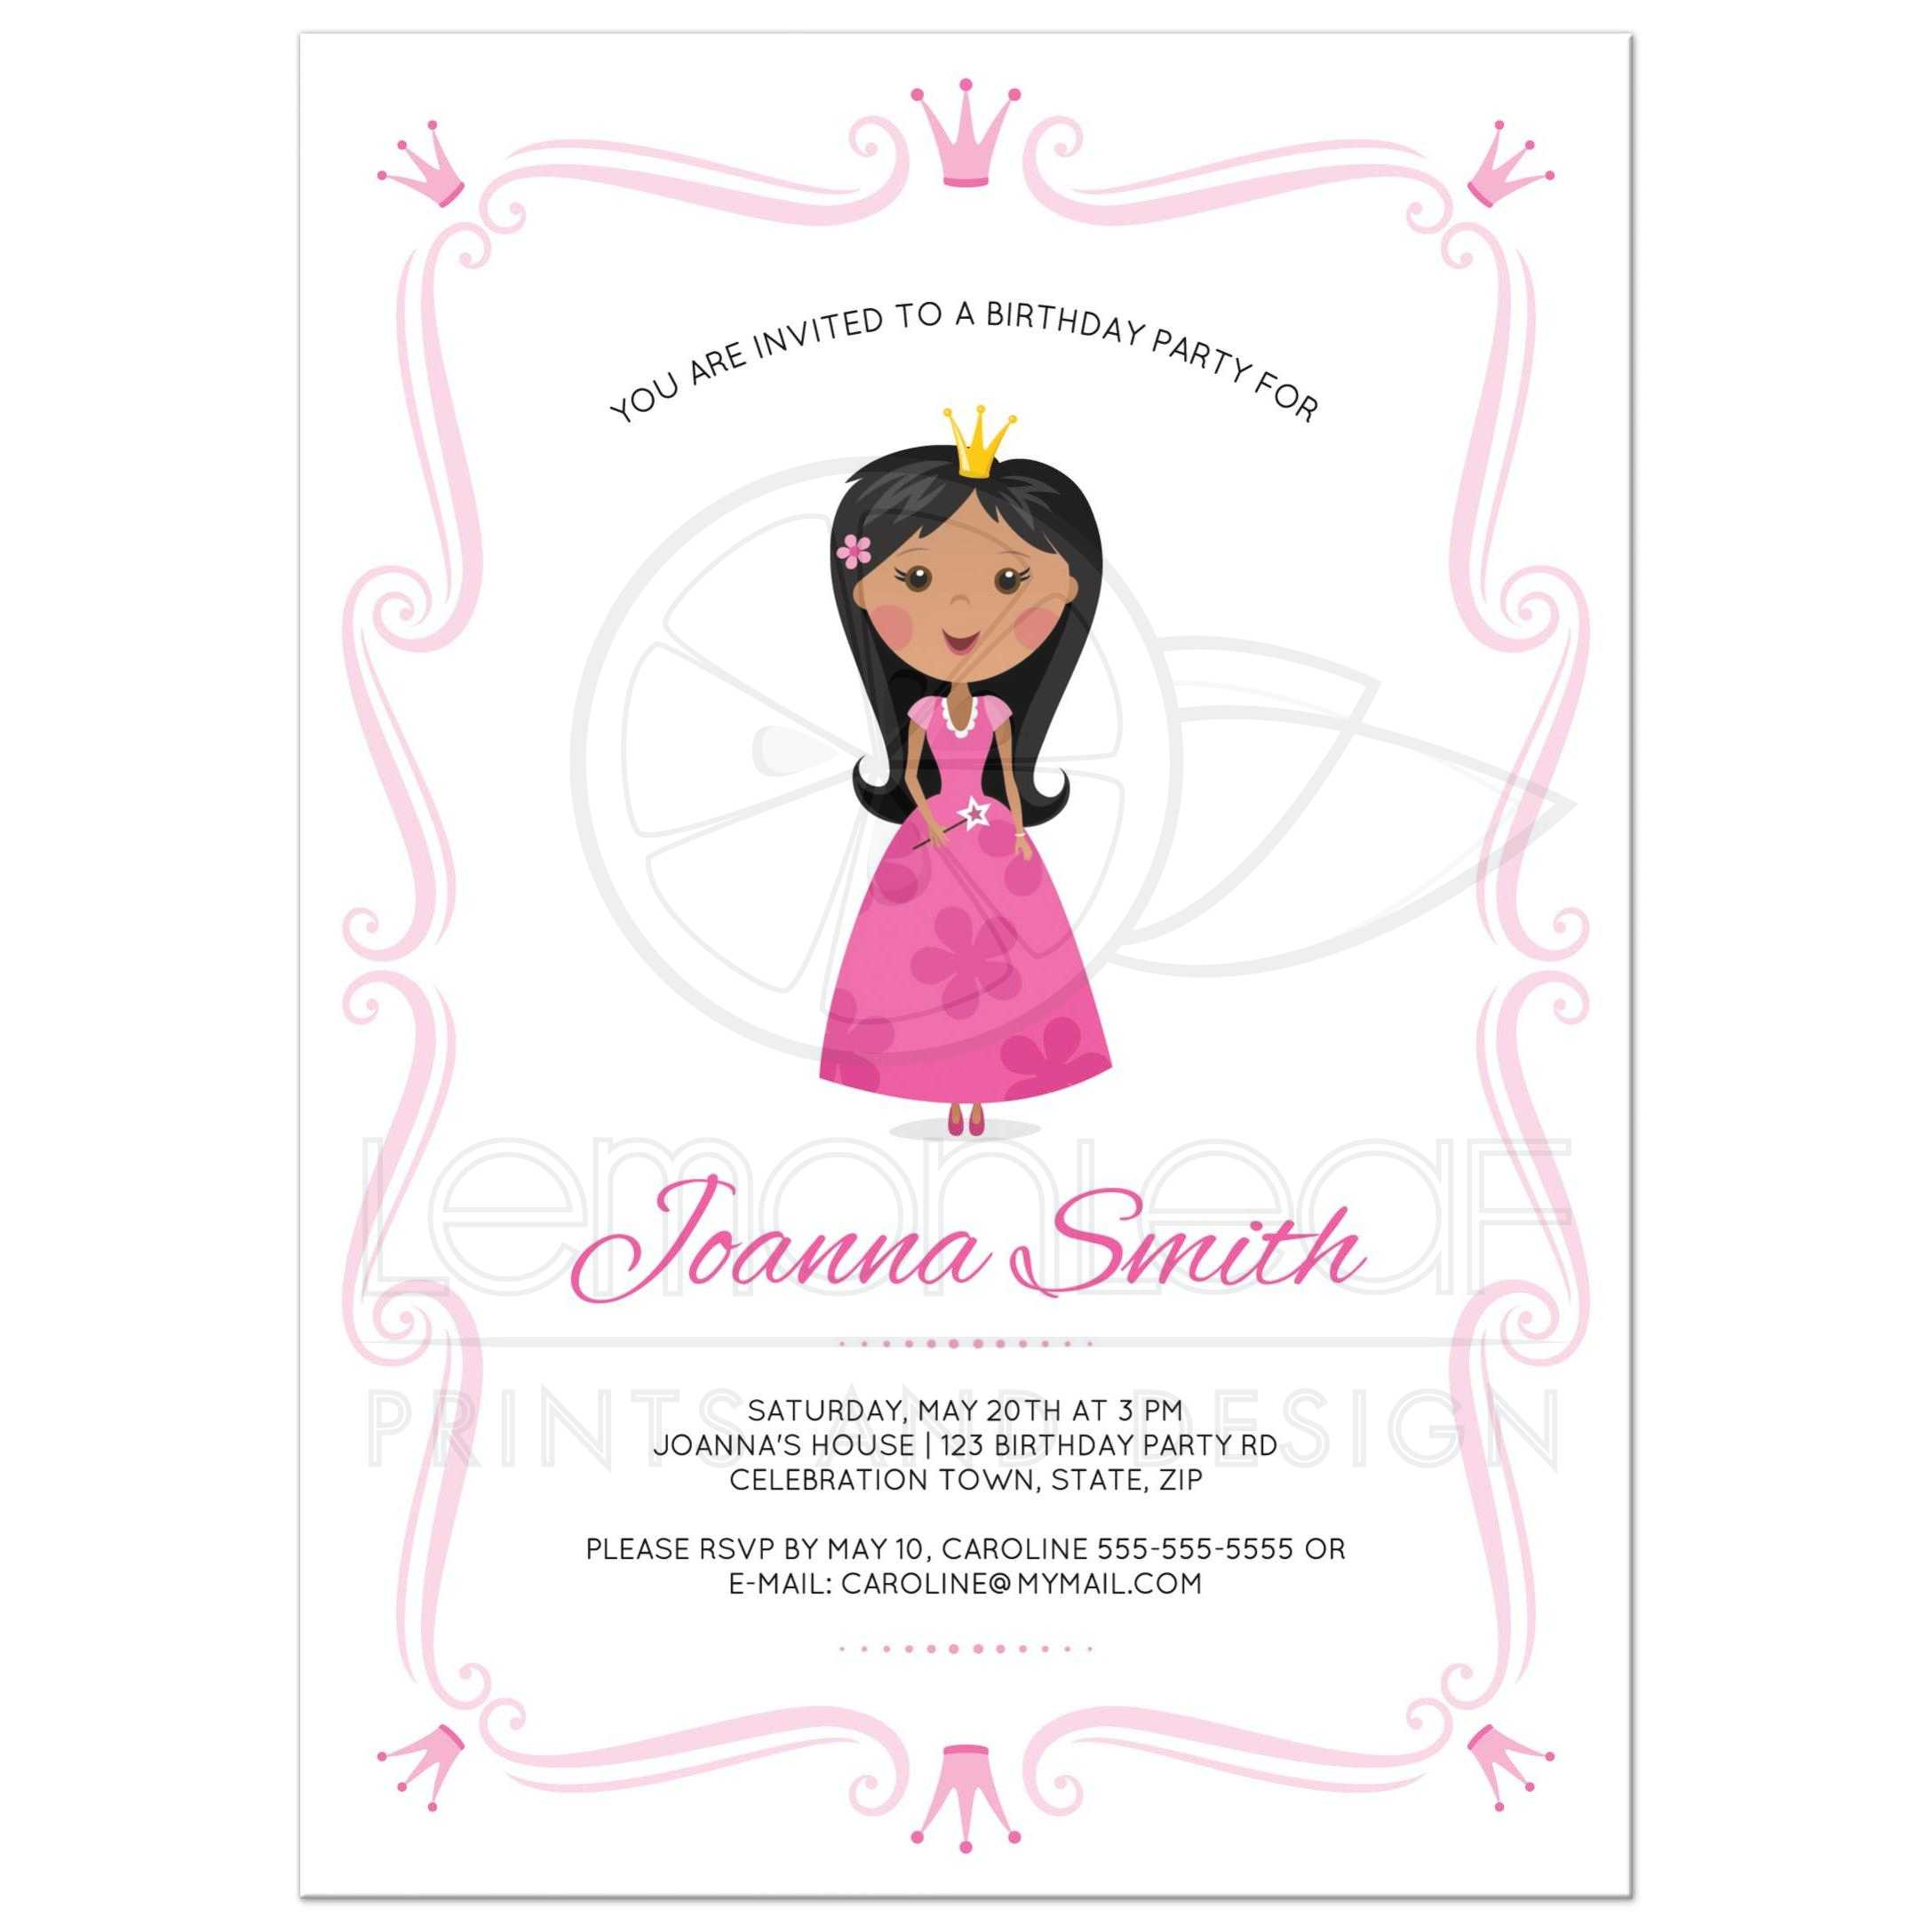 Princess Birthday Party Invitation With African American Or Asian Girl